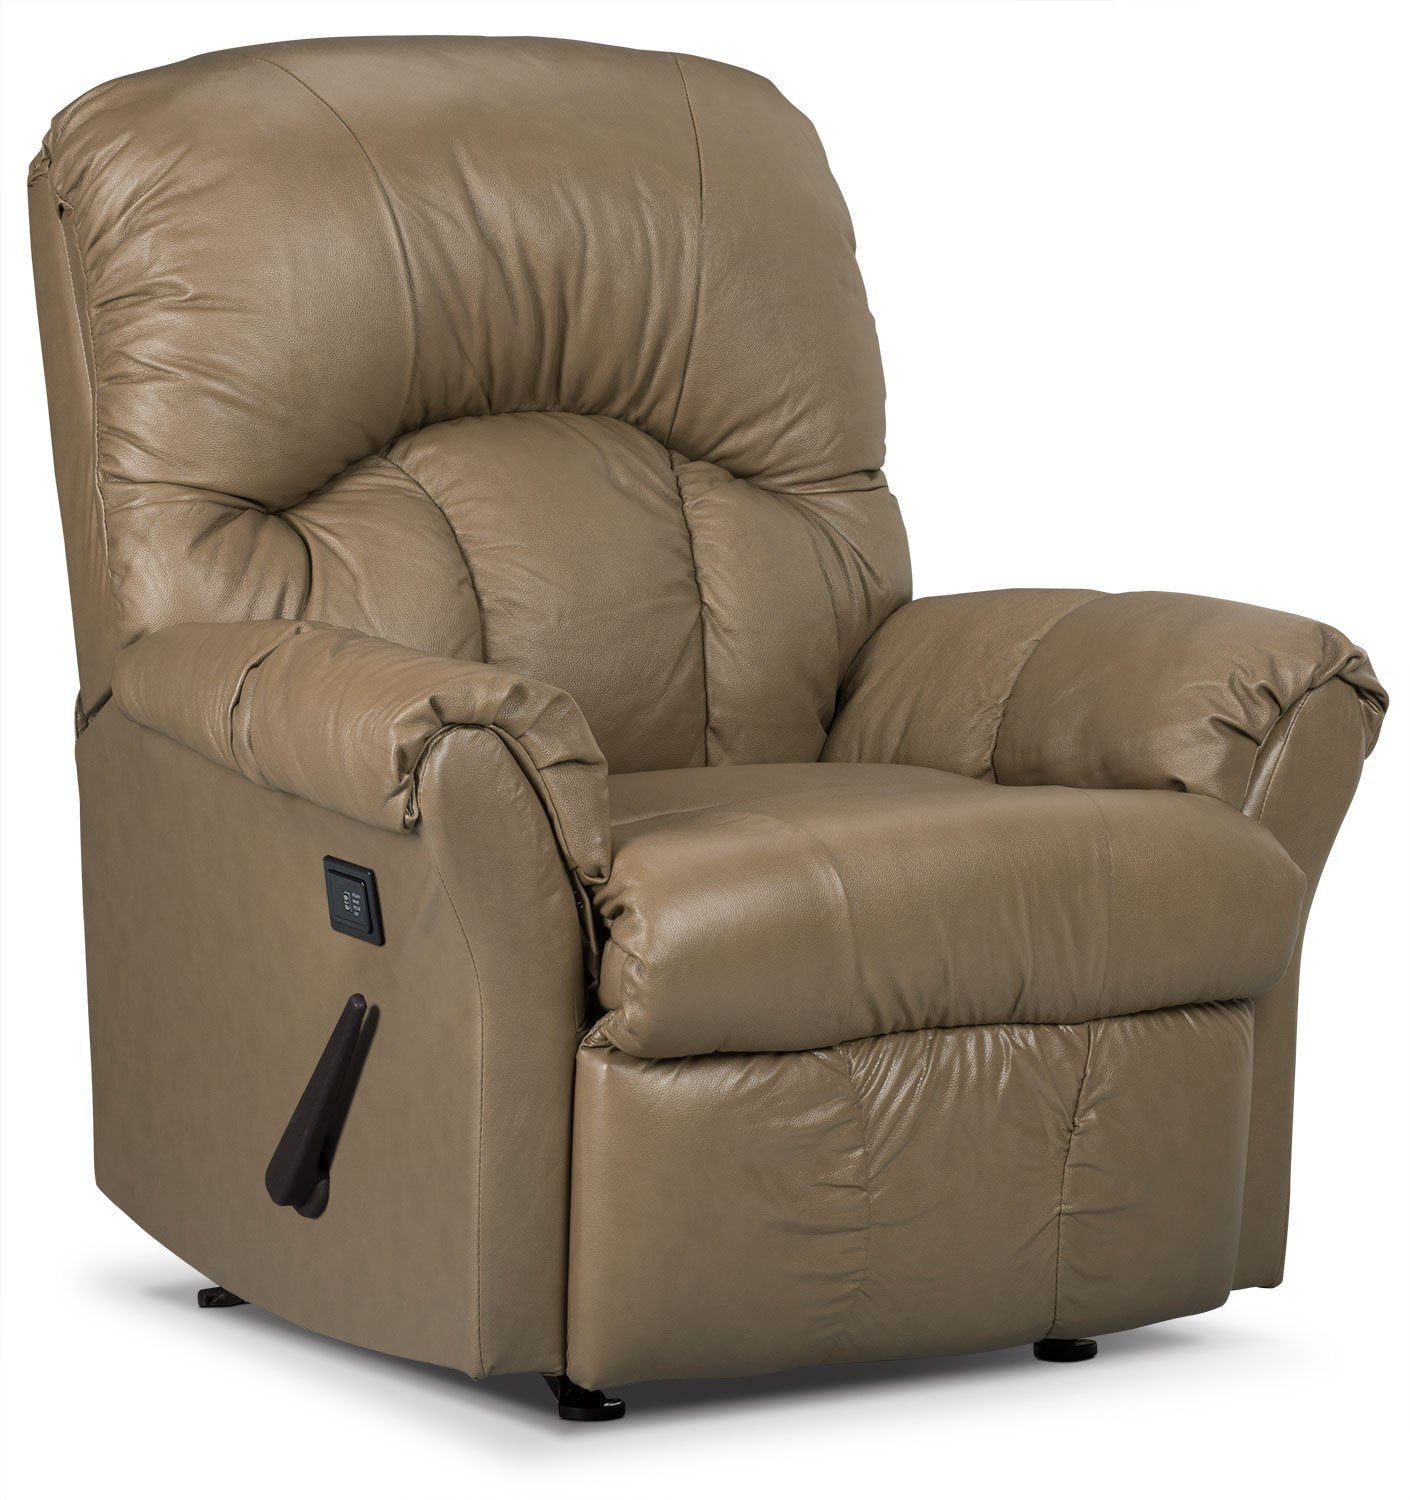 Designed2B Recliner 6734 Genuine Leather Massage Chair - Buff